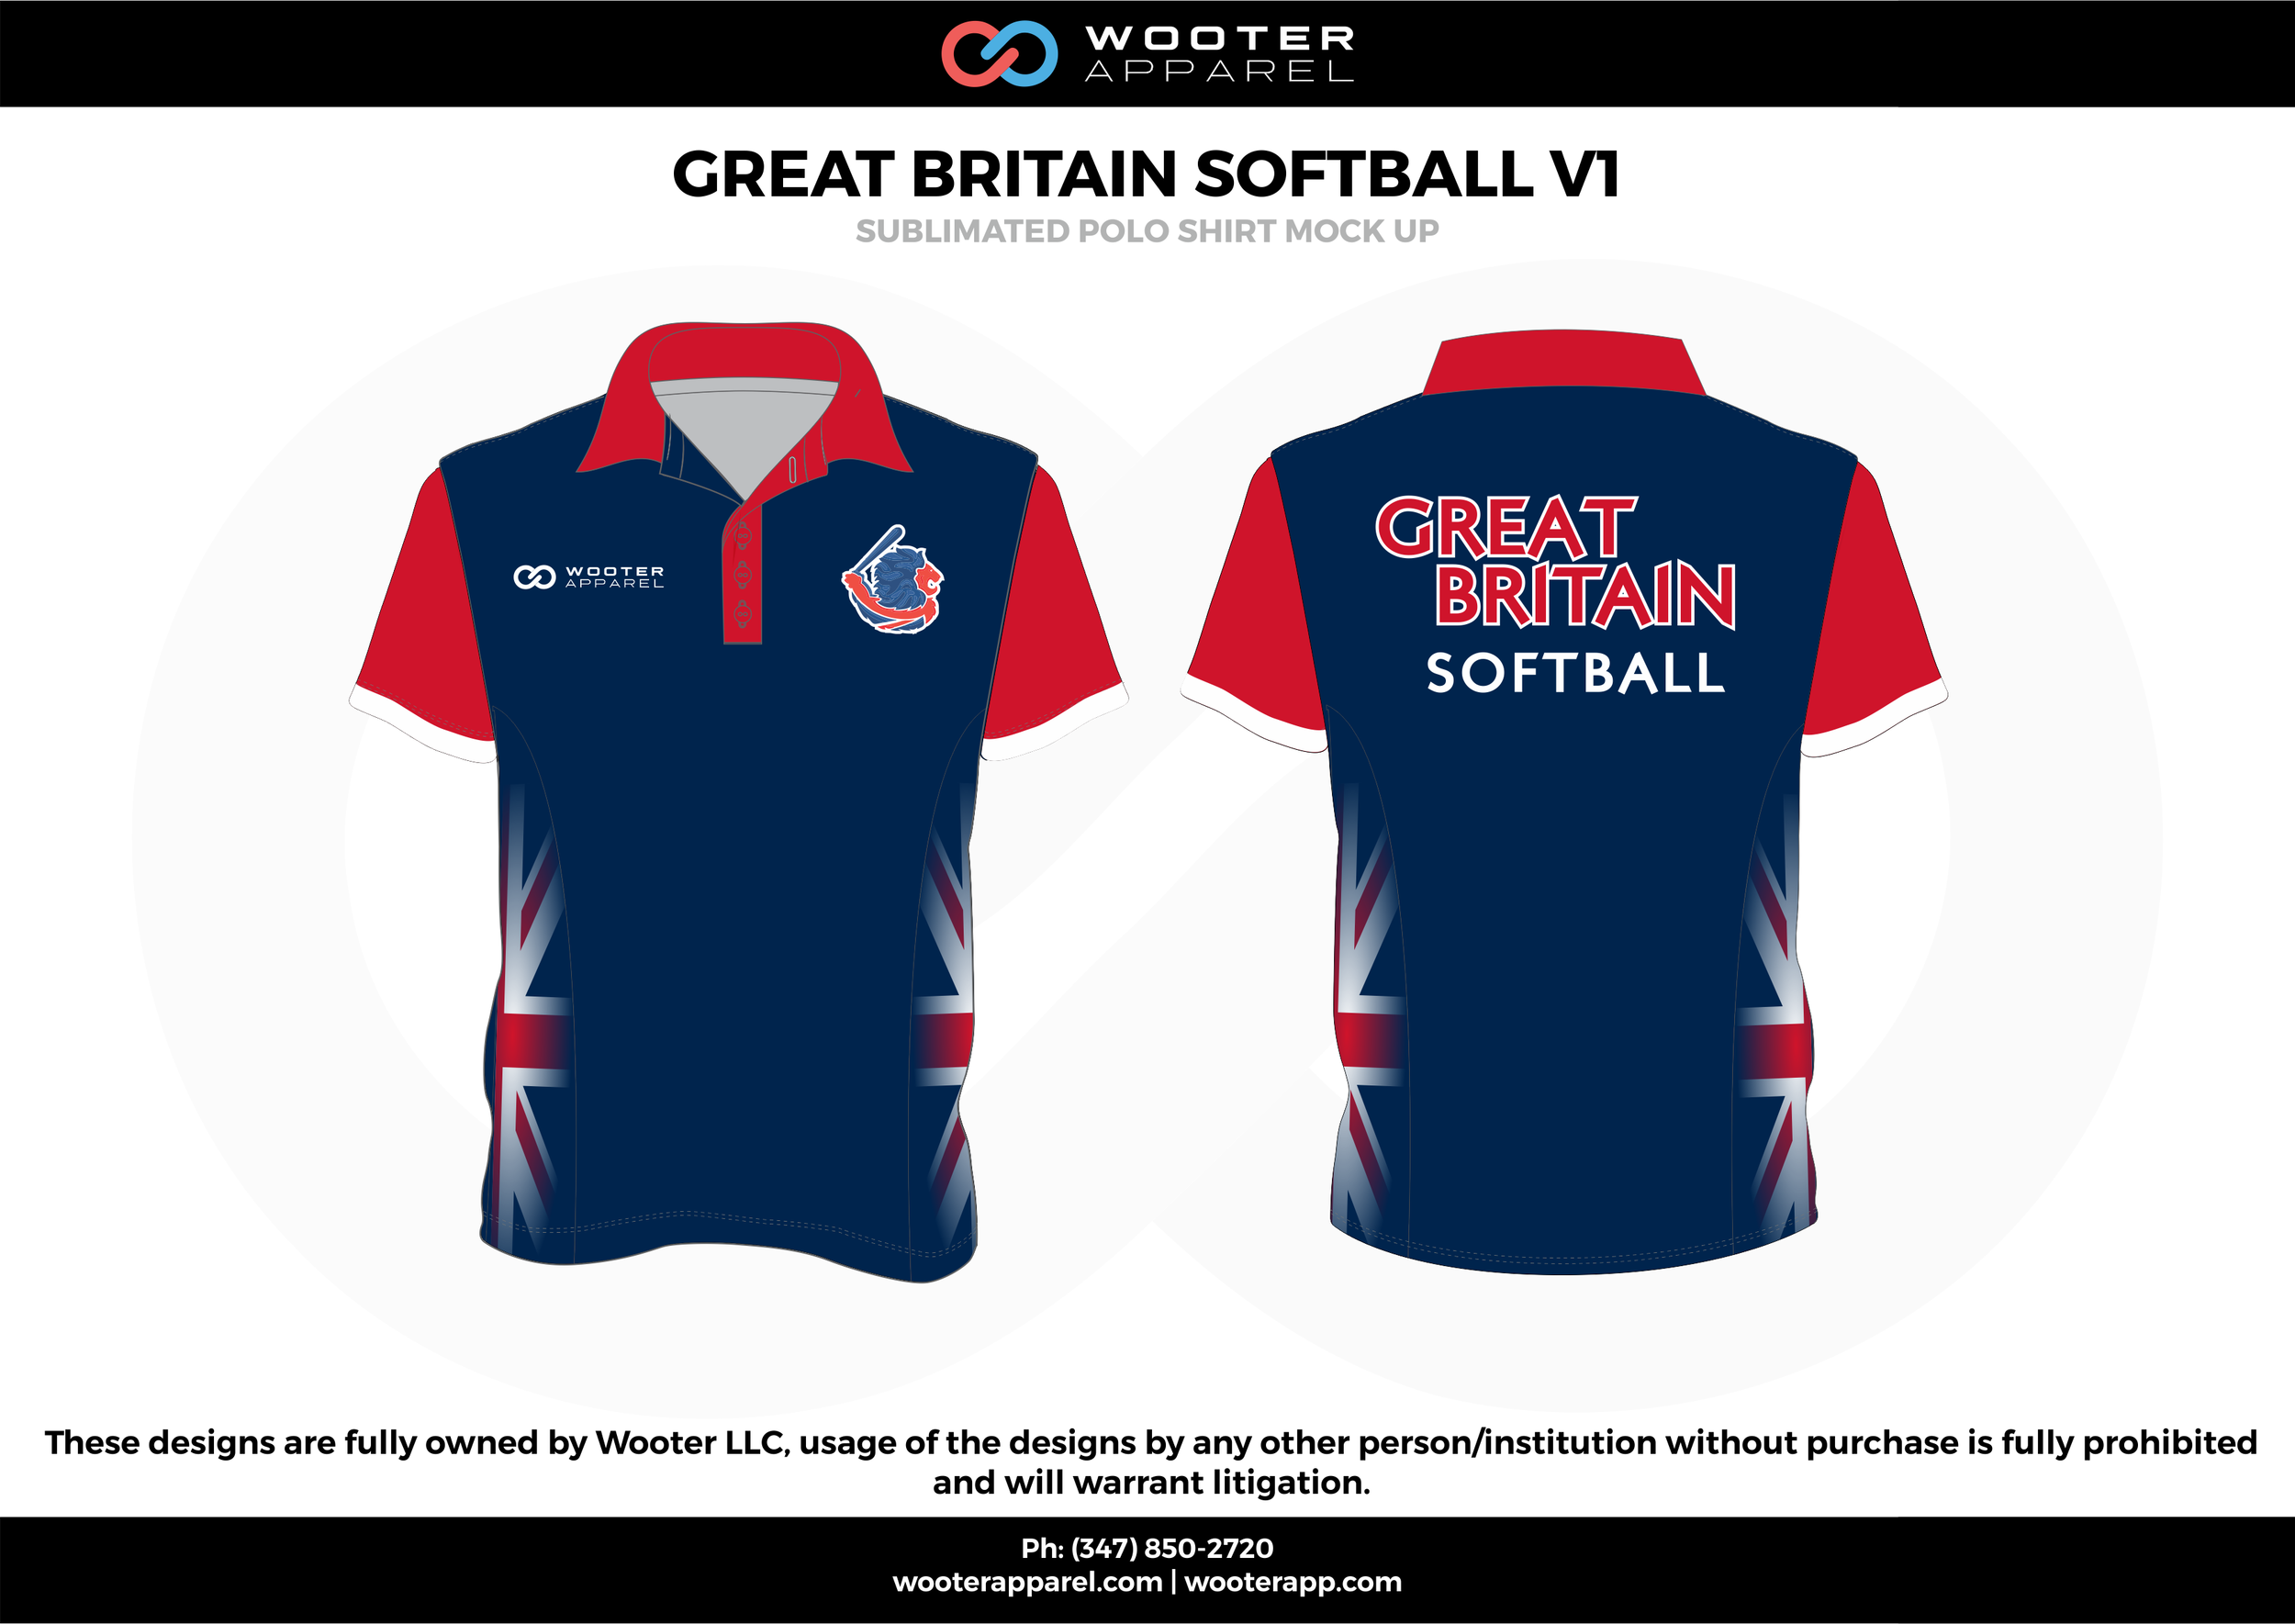 GREAT BRITAIN SOFTBALL VI blue red white Polo Shirts